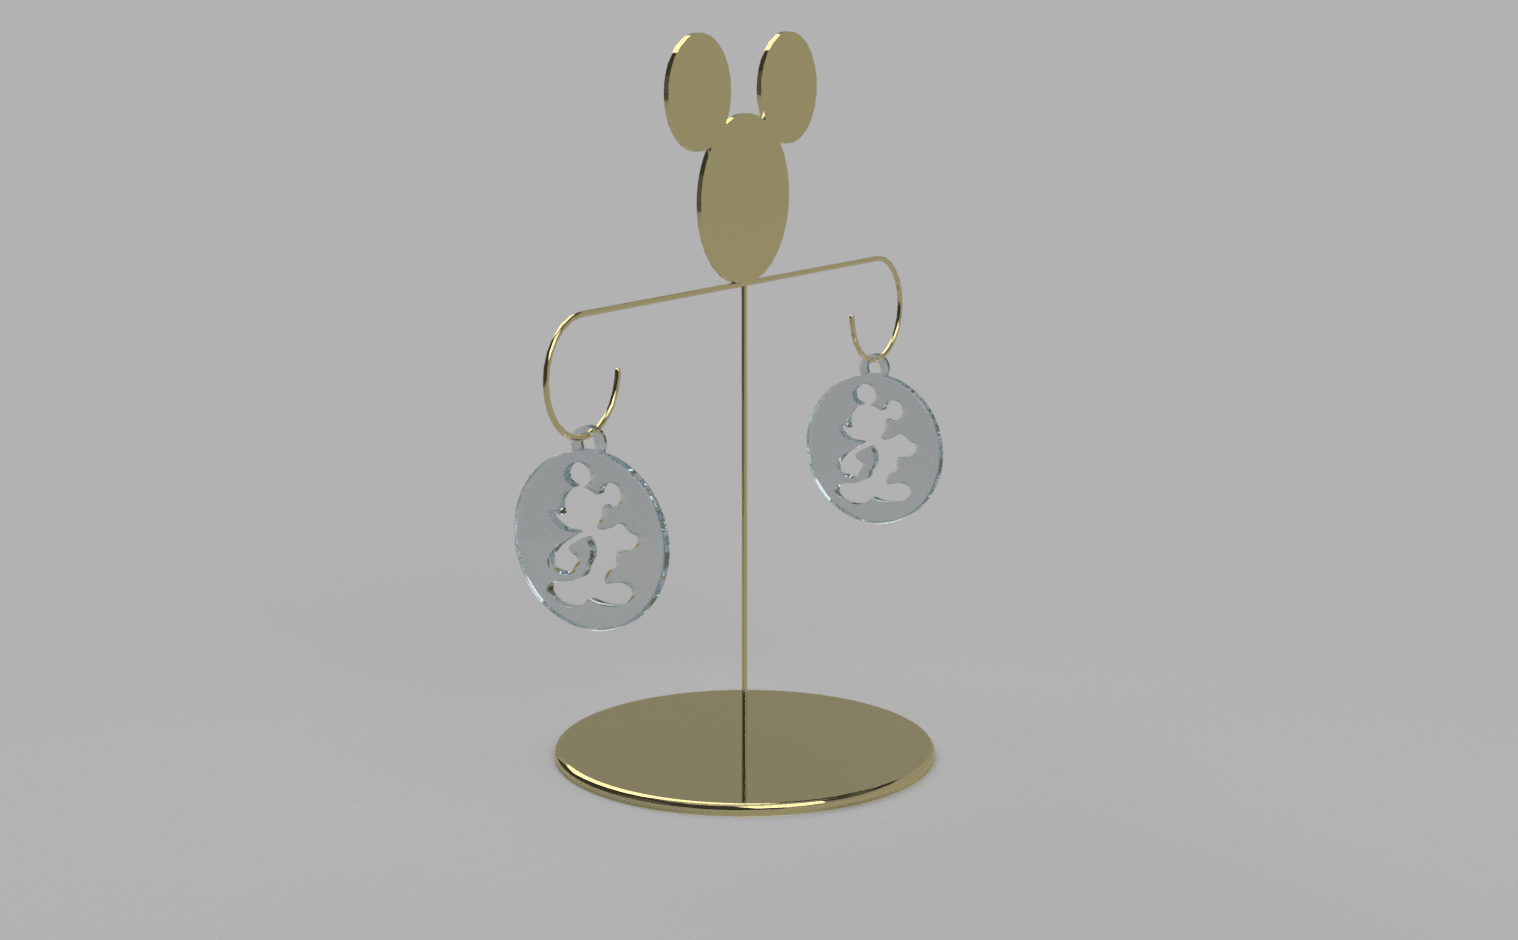 Boucle_mickey_scene v2.png Download free STL file mickey earring • 3D printable object, MME